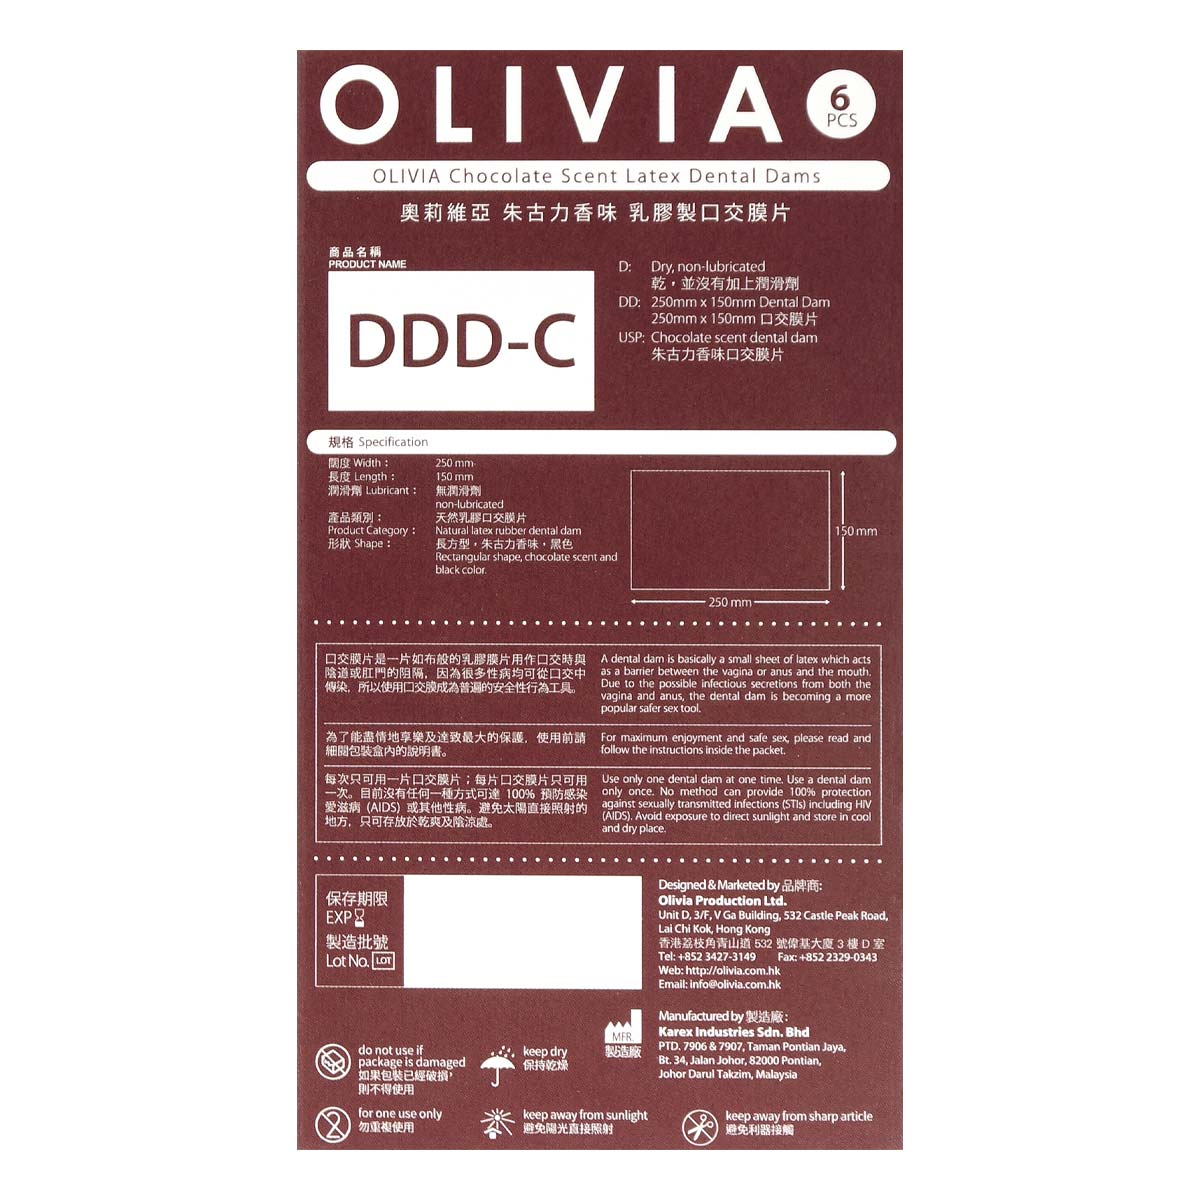 Olivia Chocolate Scent 6's Pack Latex Dental Dam